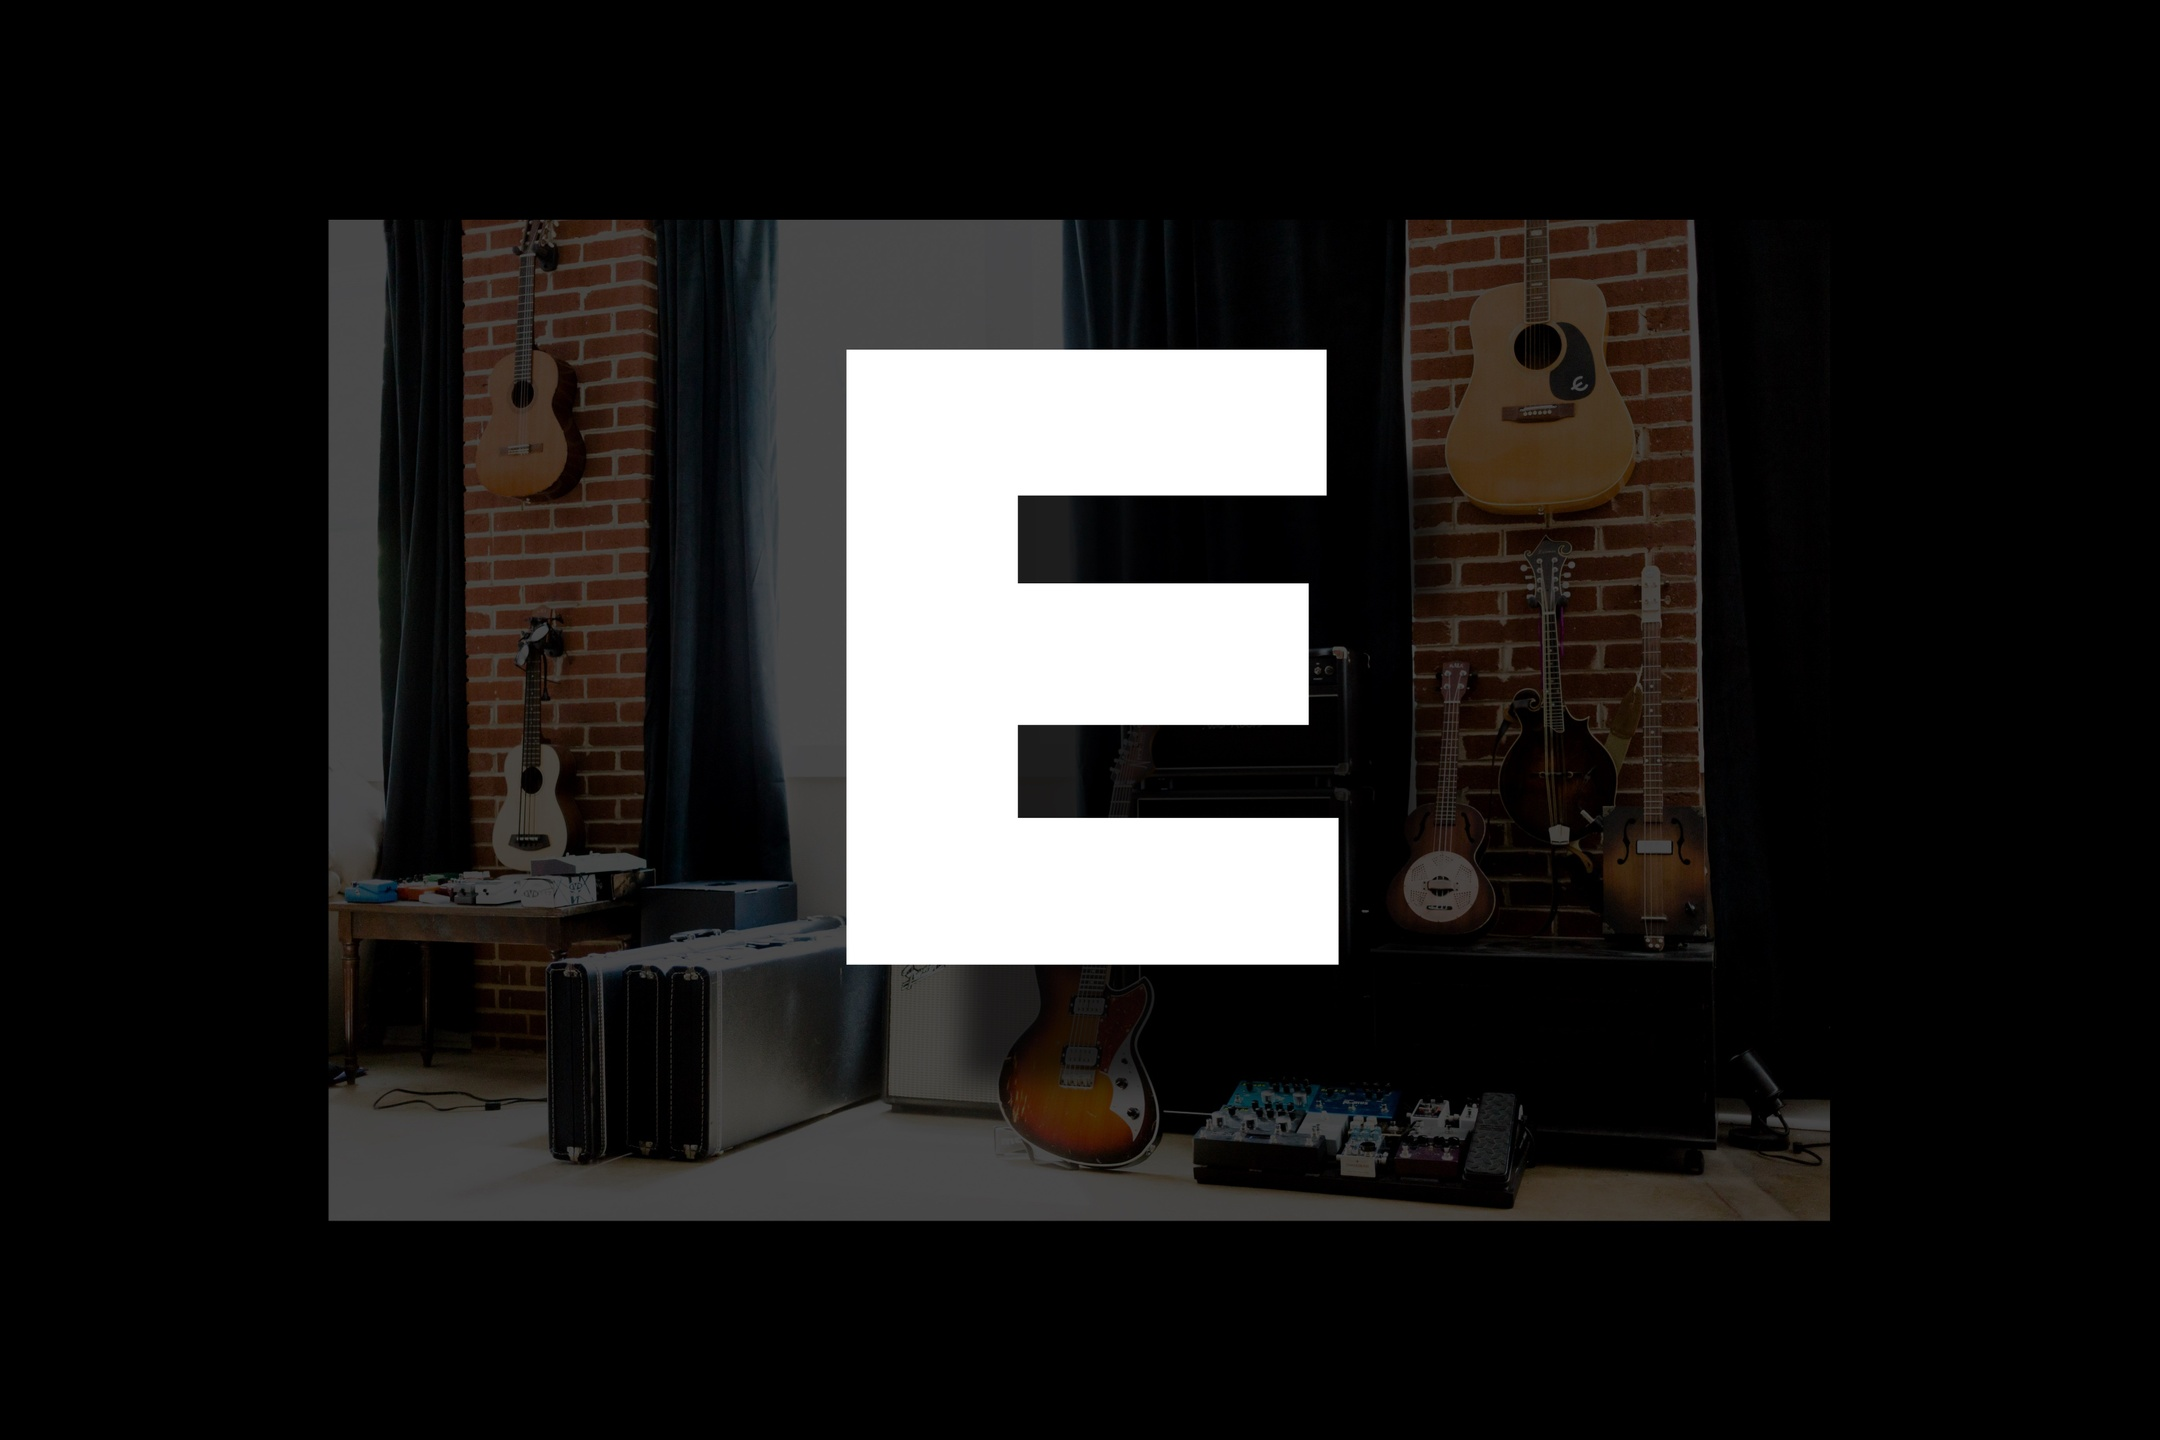 Glossary section containing music and guitar words that start with the letter E.